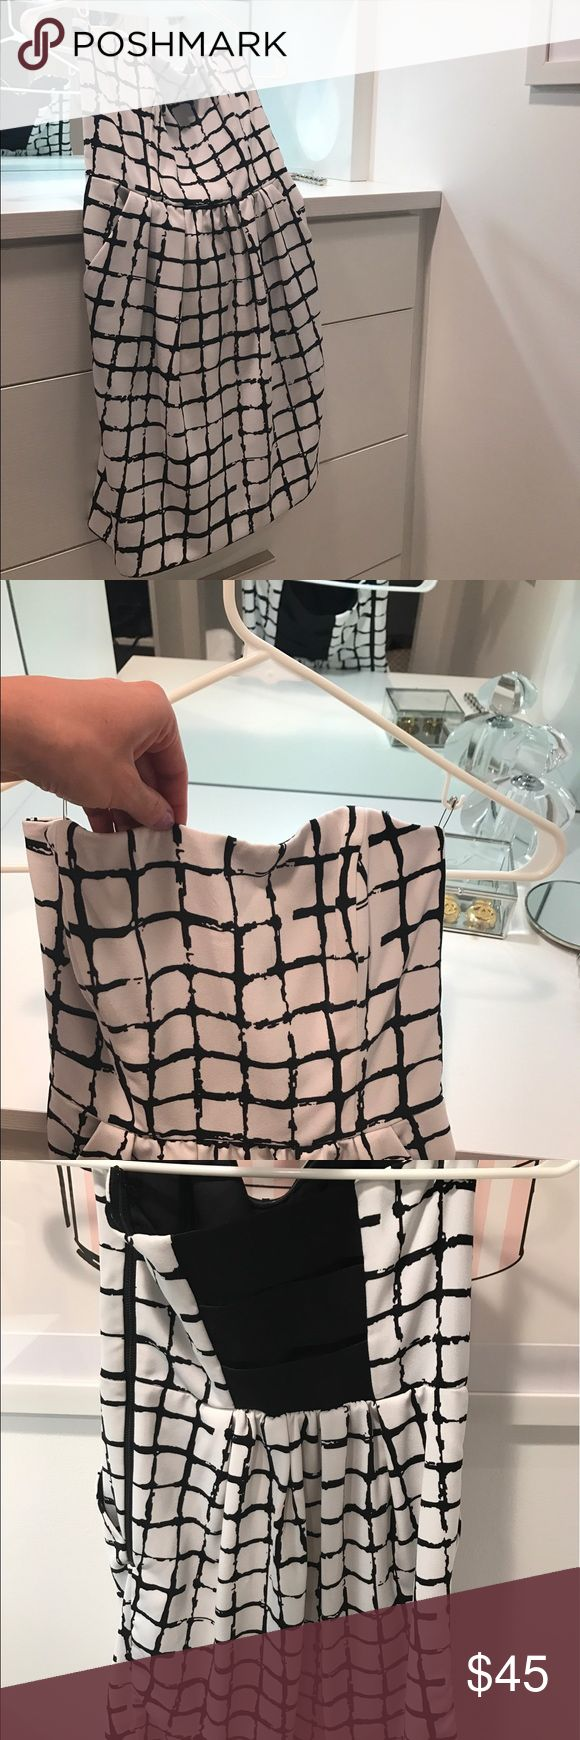 Black and white patterned mini dress. Worn 2x Rachel Roy Black and white patterned mini dress. Worn 2x and dry cleaned after each wear. Dress is shorter, but has a classy look. Front pockets for a comfortable wear. RACHEL Rachel Roy Dresses Mini